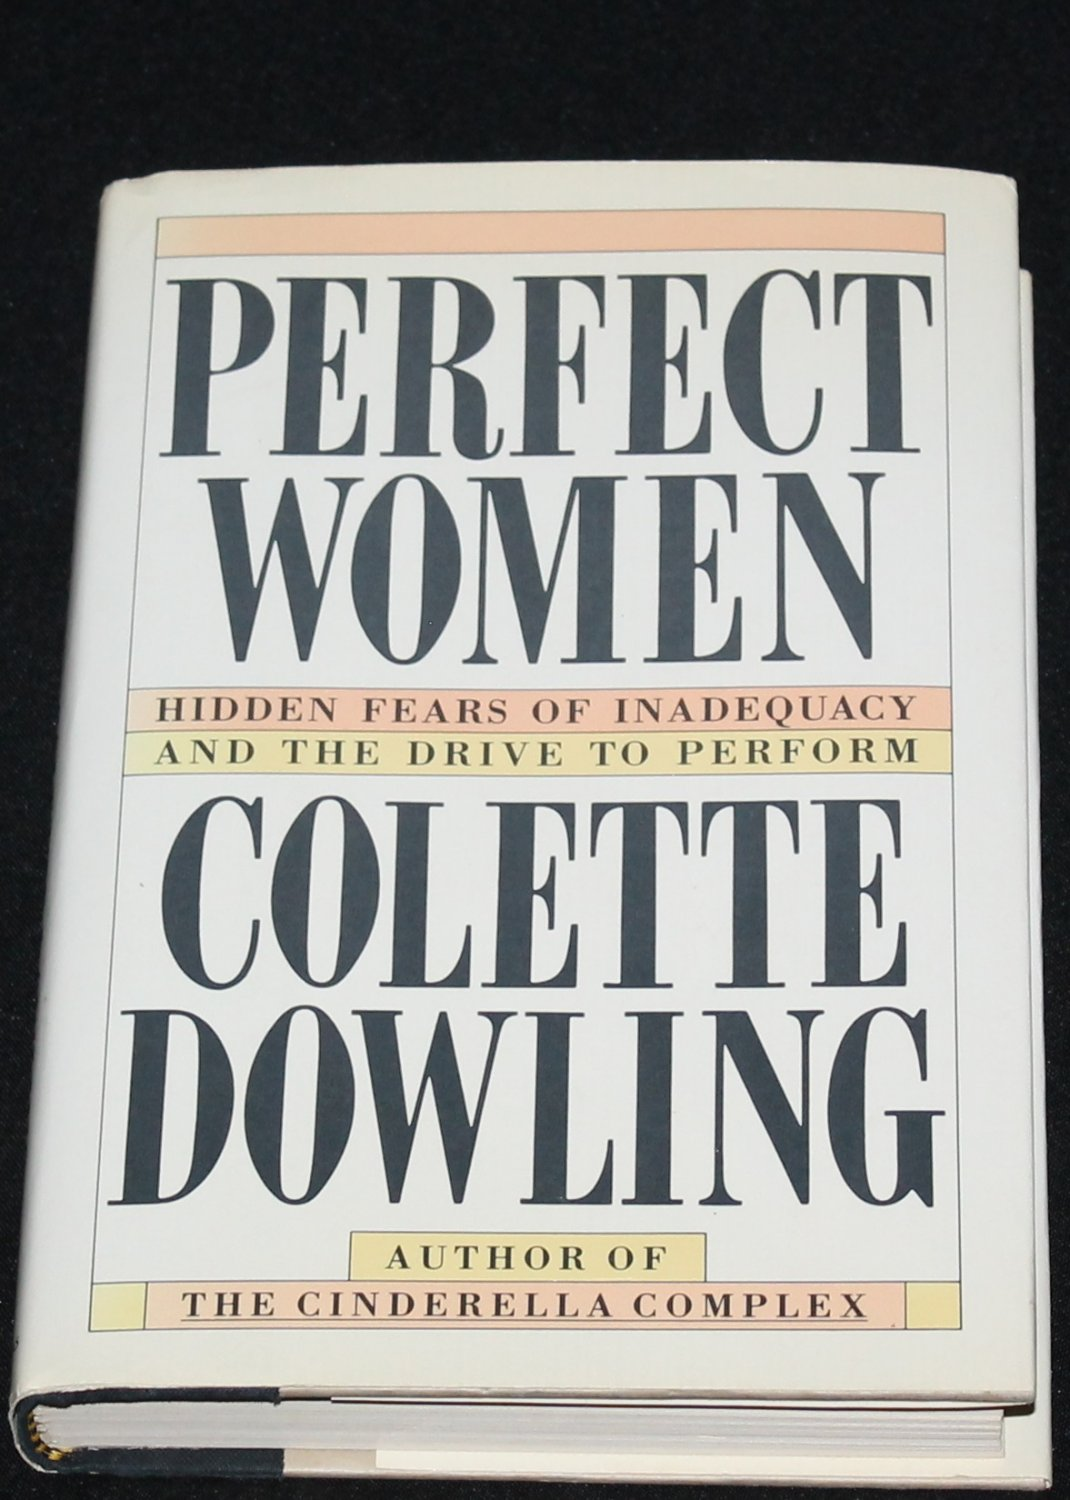 a critique of the cinderella complex womens hidden fear of independence by colette dowlings Colette dowling (c 1938) is an writer best known for her 1981 book the cinderella complex: women's hidden fear of independence including the cinderella.